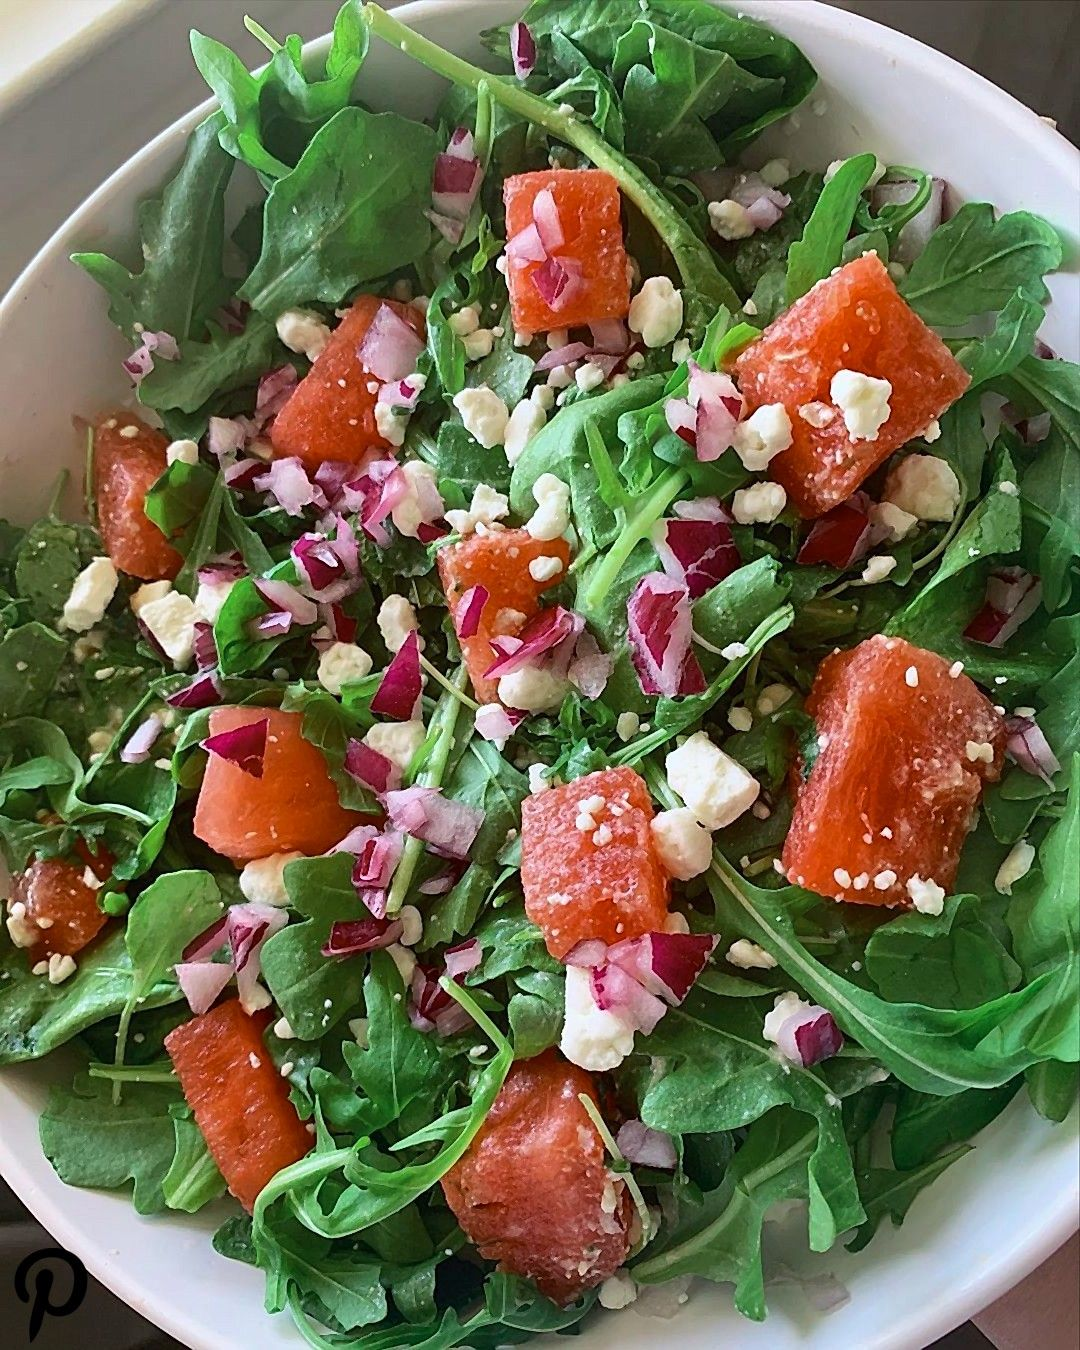 A busy week ahead means quick easy lunches  This Arugula Watermelon Salad is a summer favorite L A busy week ahead means quick easy lunches  This Arugula Watermelon Salad...